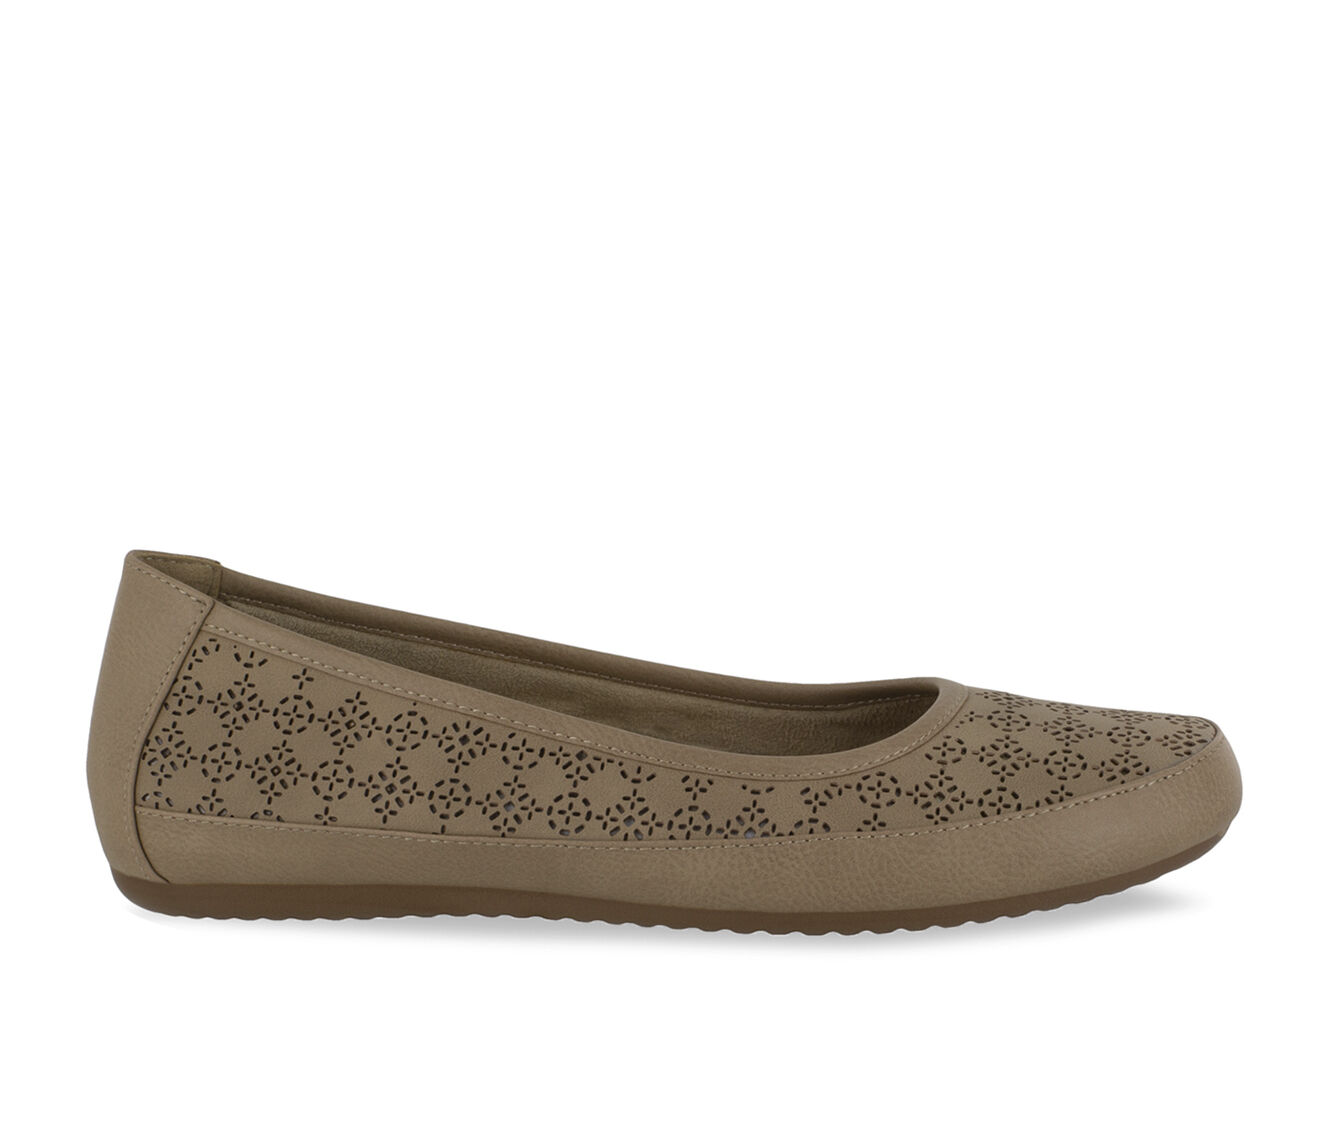 new arrivals Women's Easy Street Benny Shoes Sand